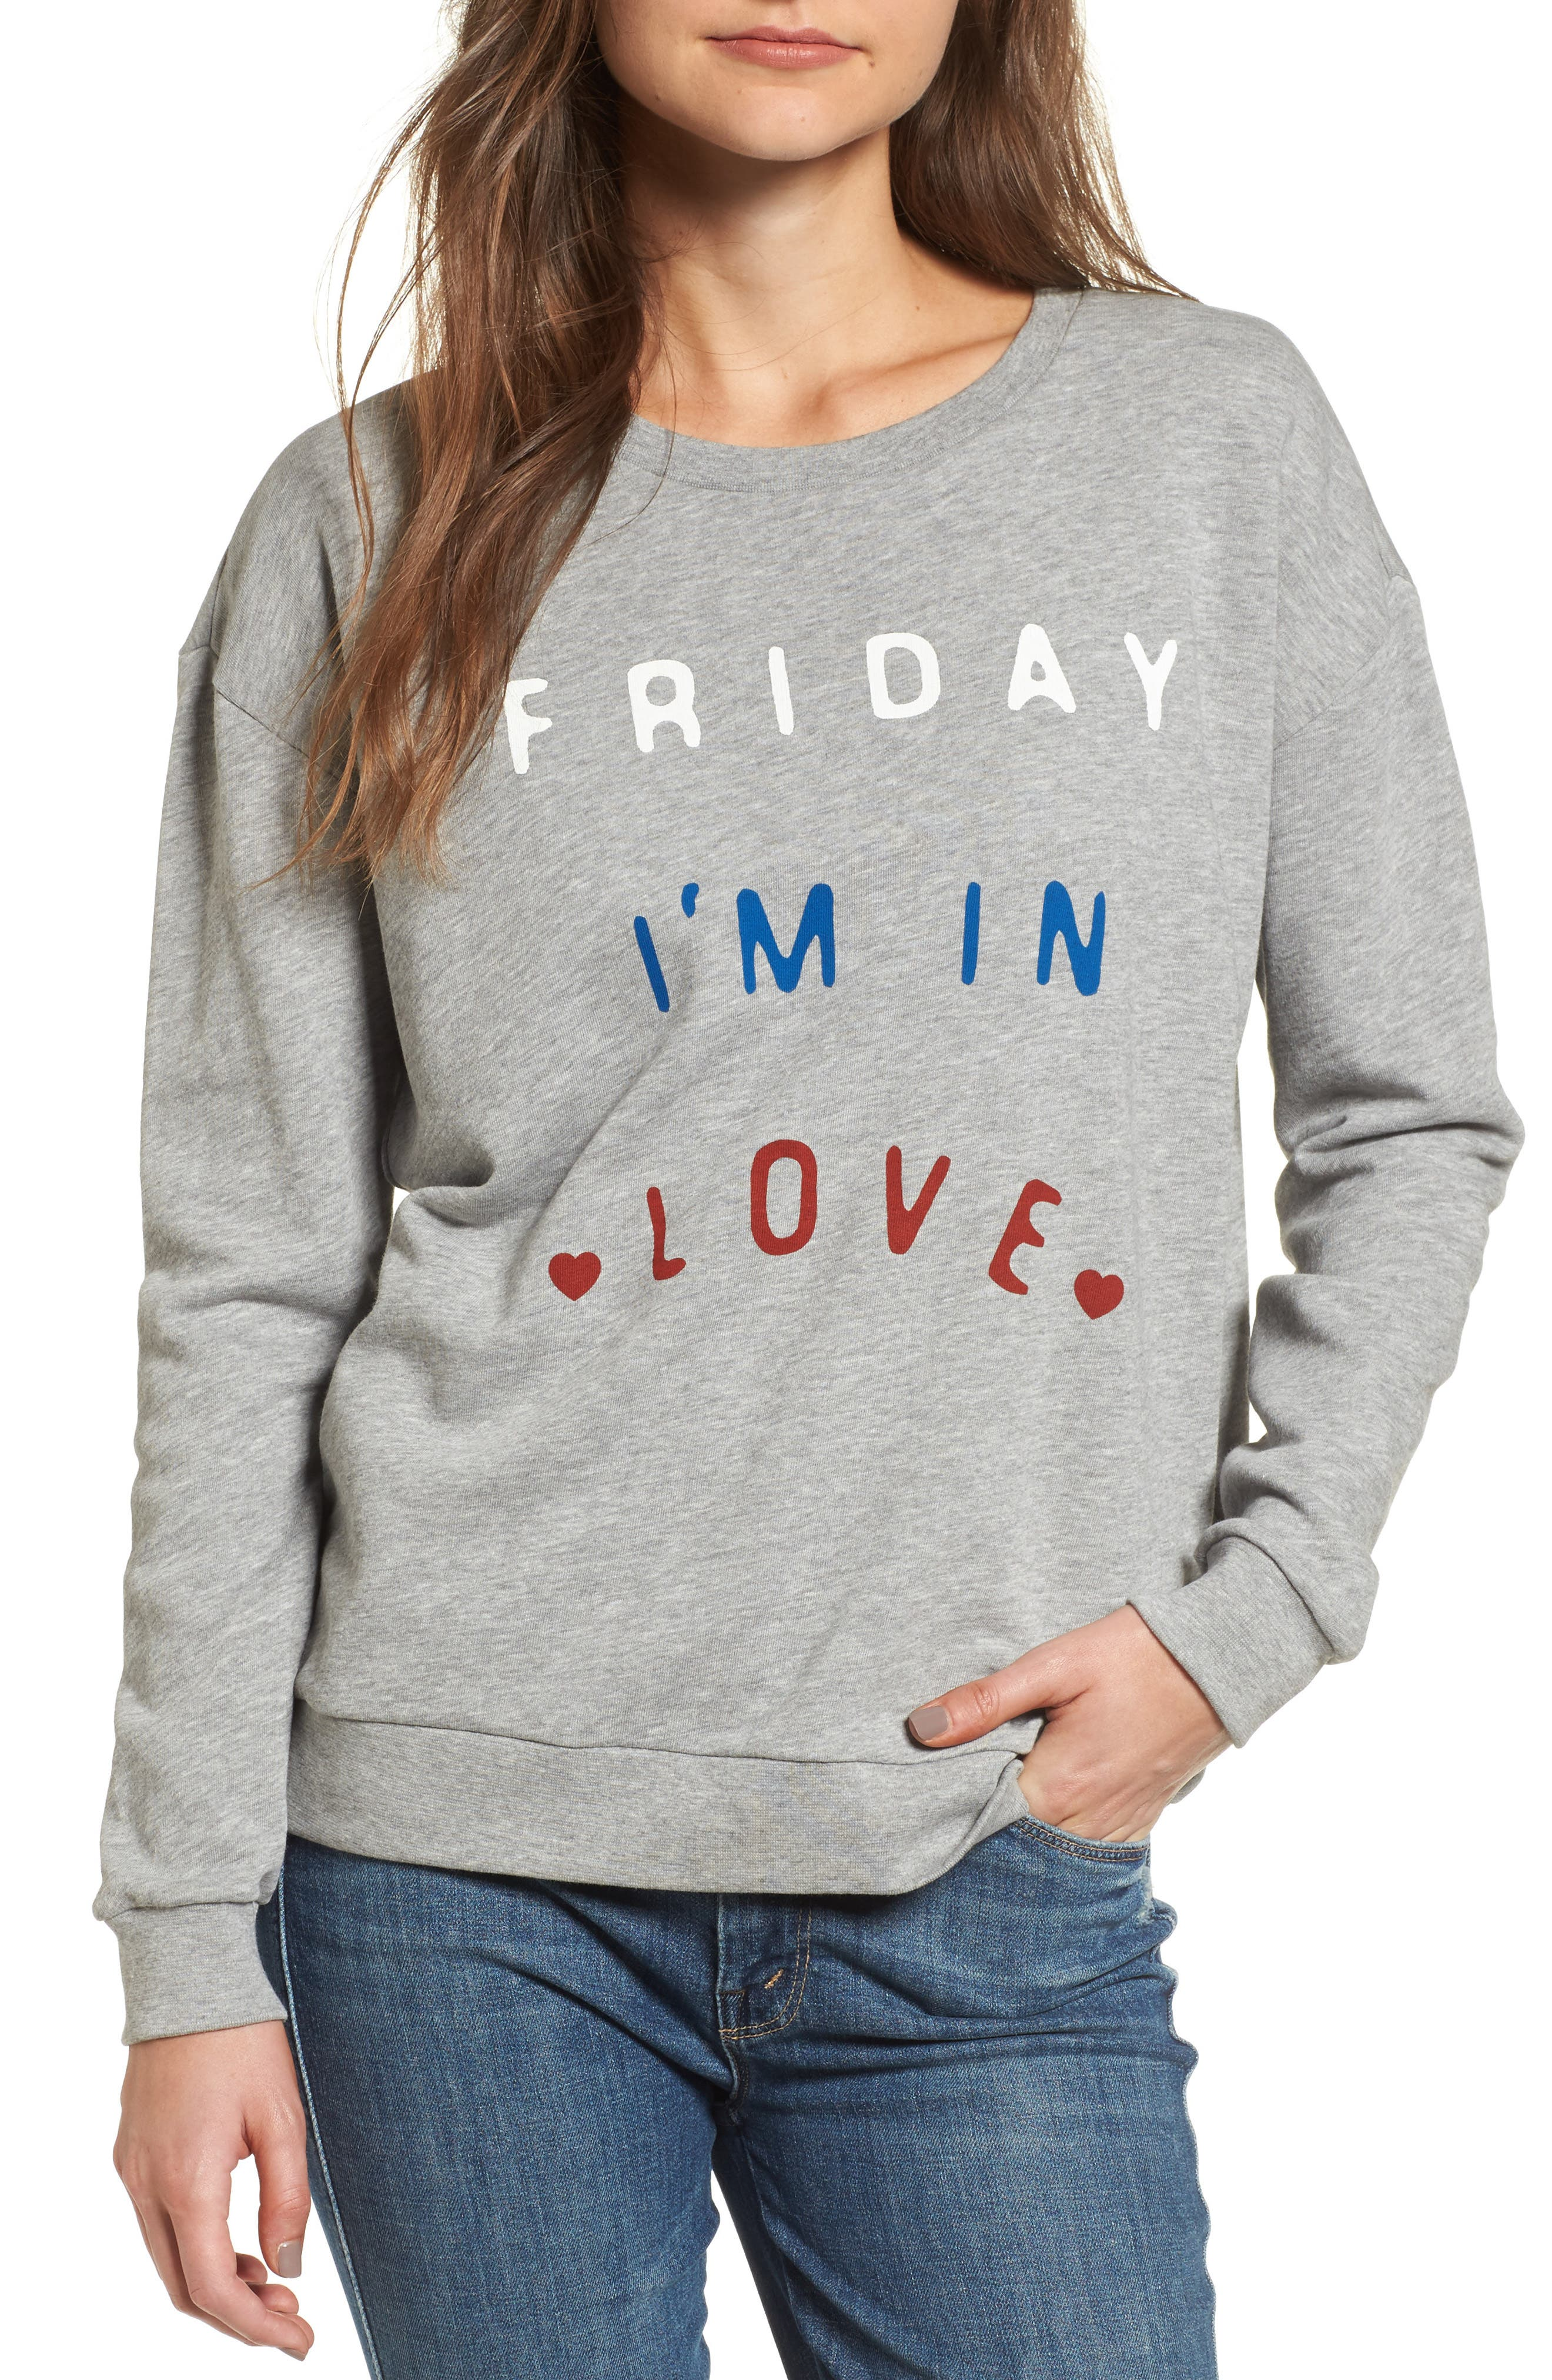 South Parade Friday I'm In Love Sweatshirt